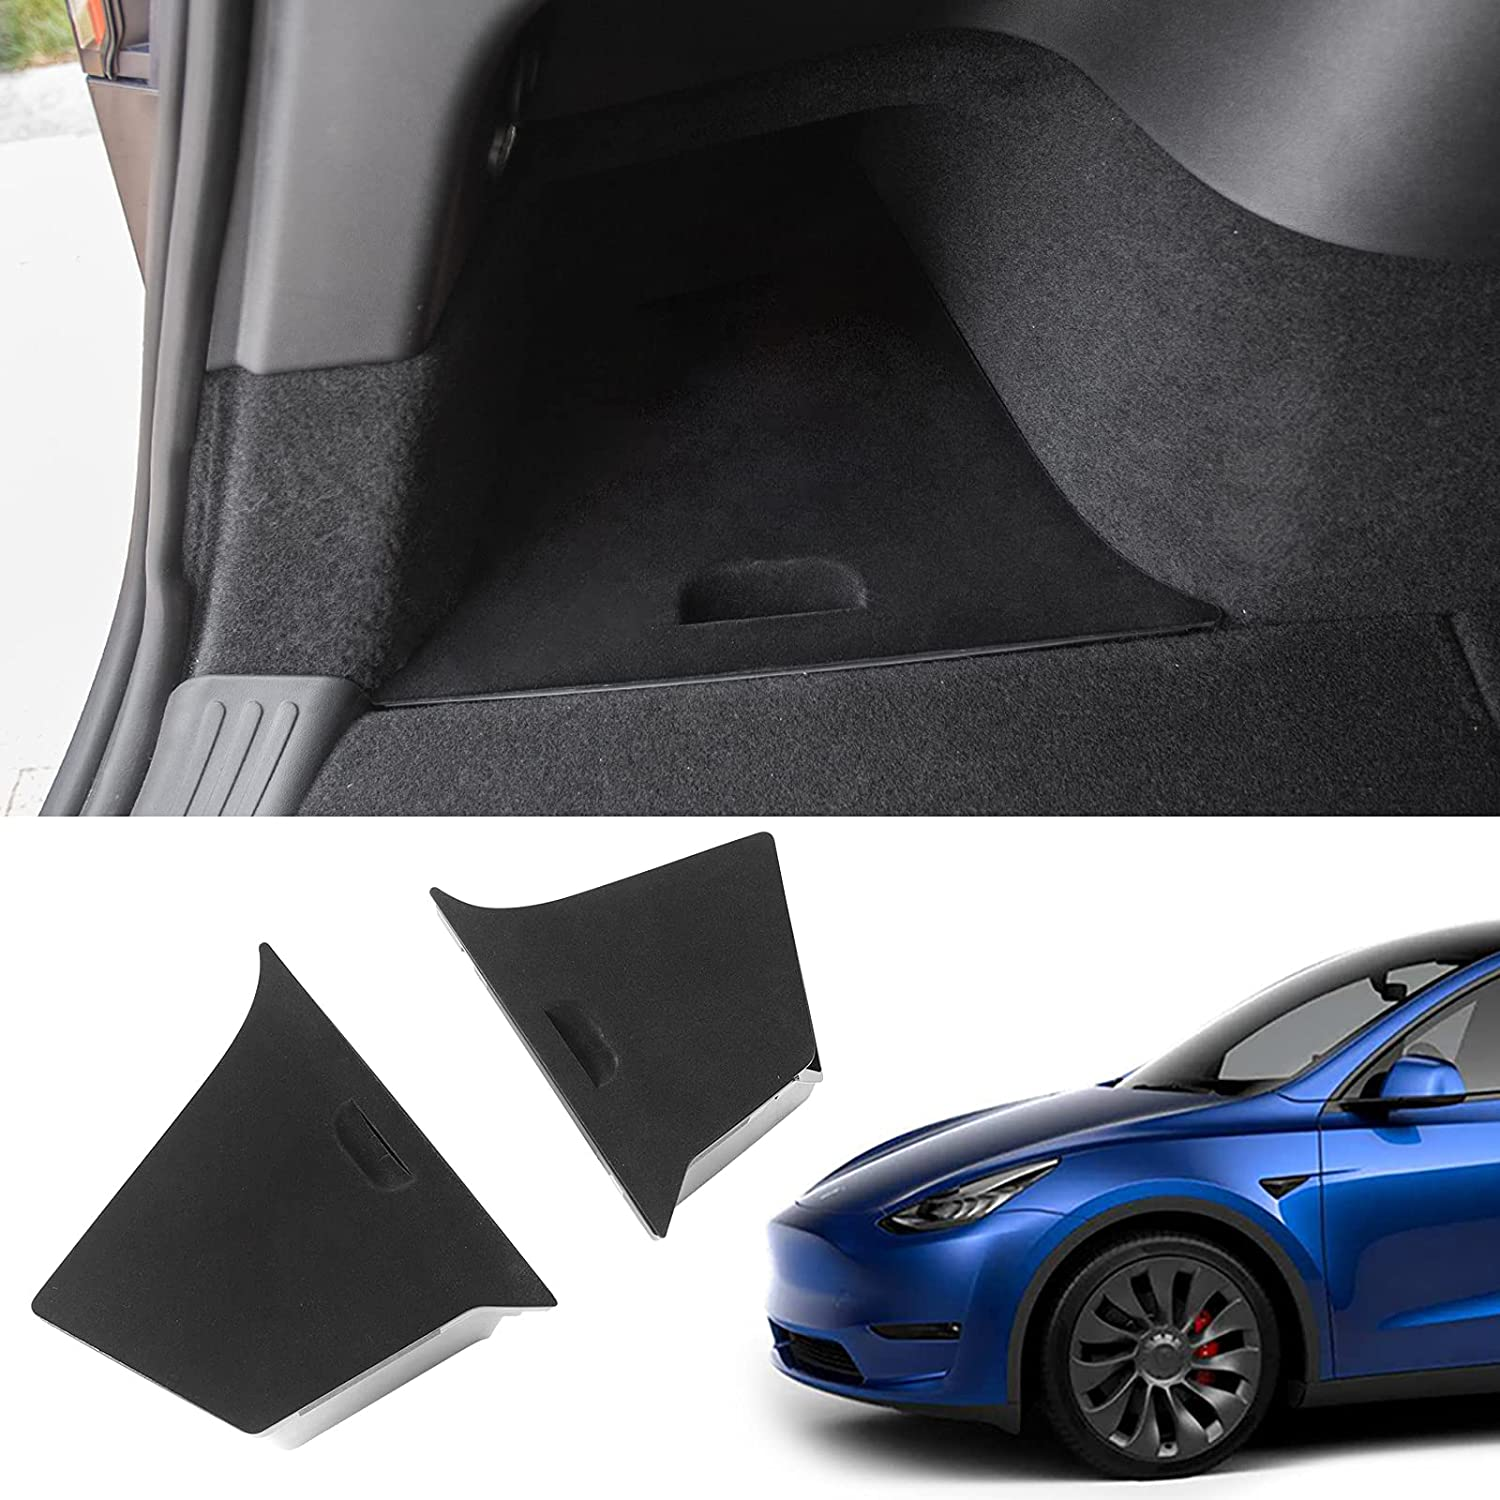 Fit Tesla Model Y Trunk Organizer Rear Trunk Storage Box Side Packets Tray Bins For Tesla Model Y Accessories 2020 2021 (Rear Trunk Side Boxes(Lid Without Hole))